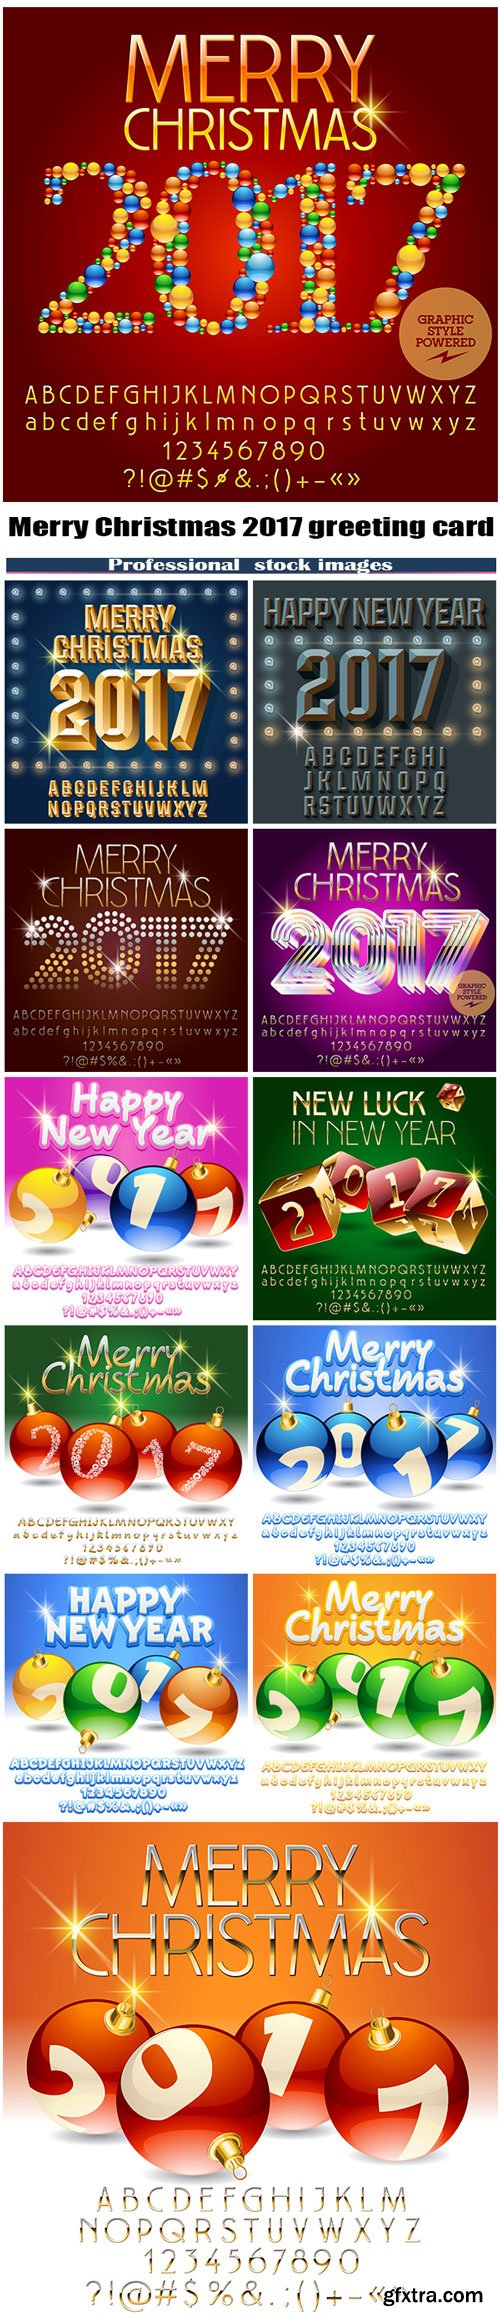 Merry Christmas 2017 greeting card with set of letters, symbols and numbers